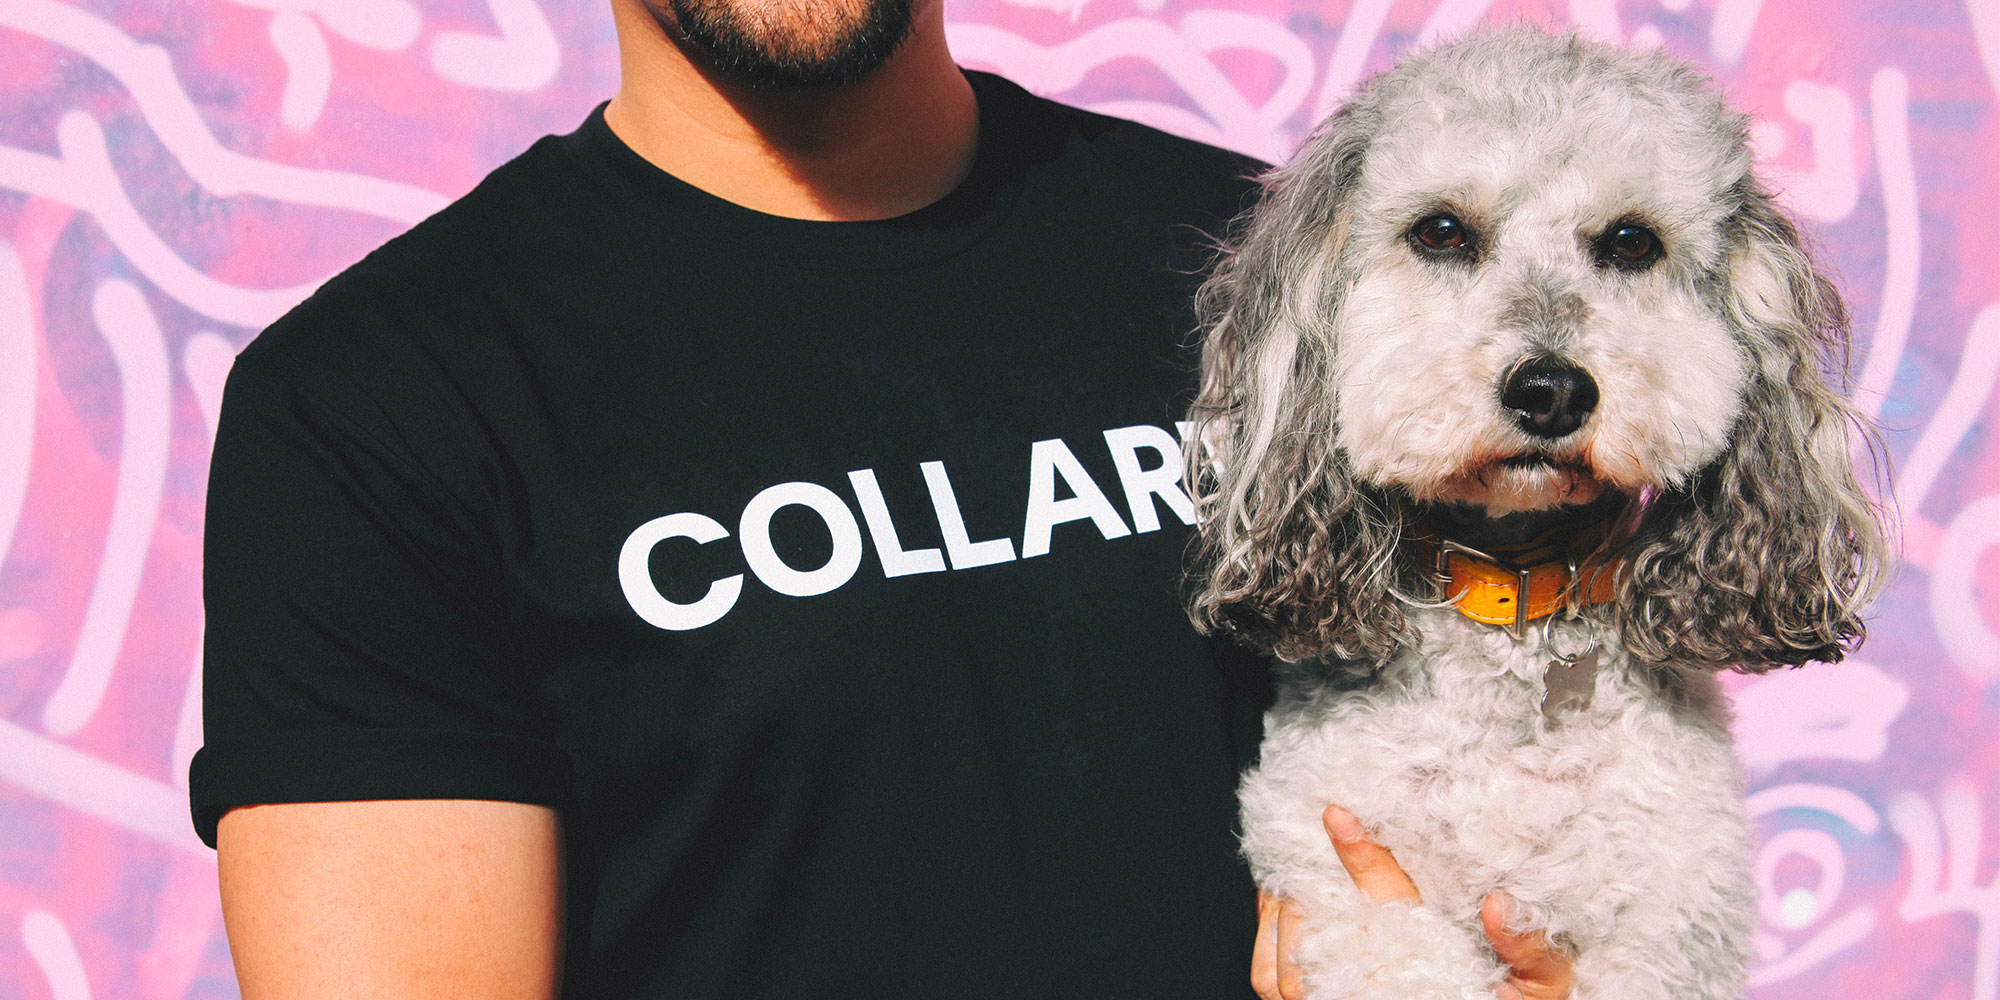 Collarts Launches New Merch Collection